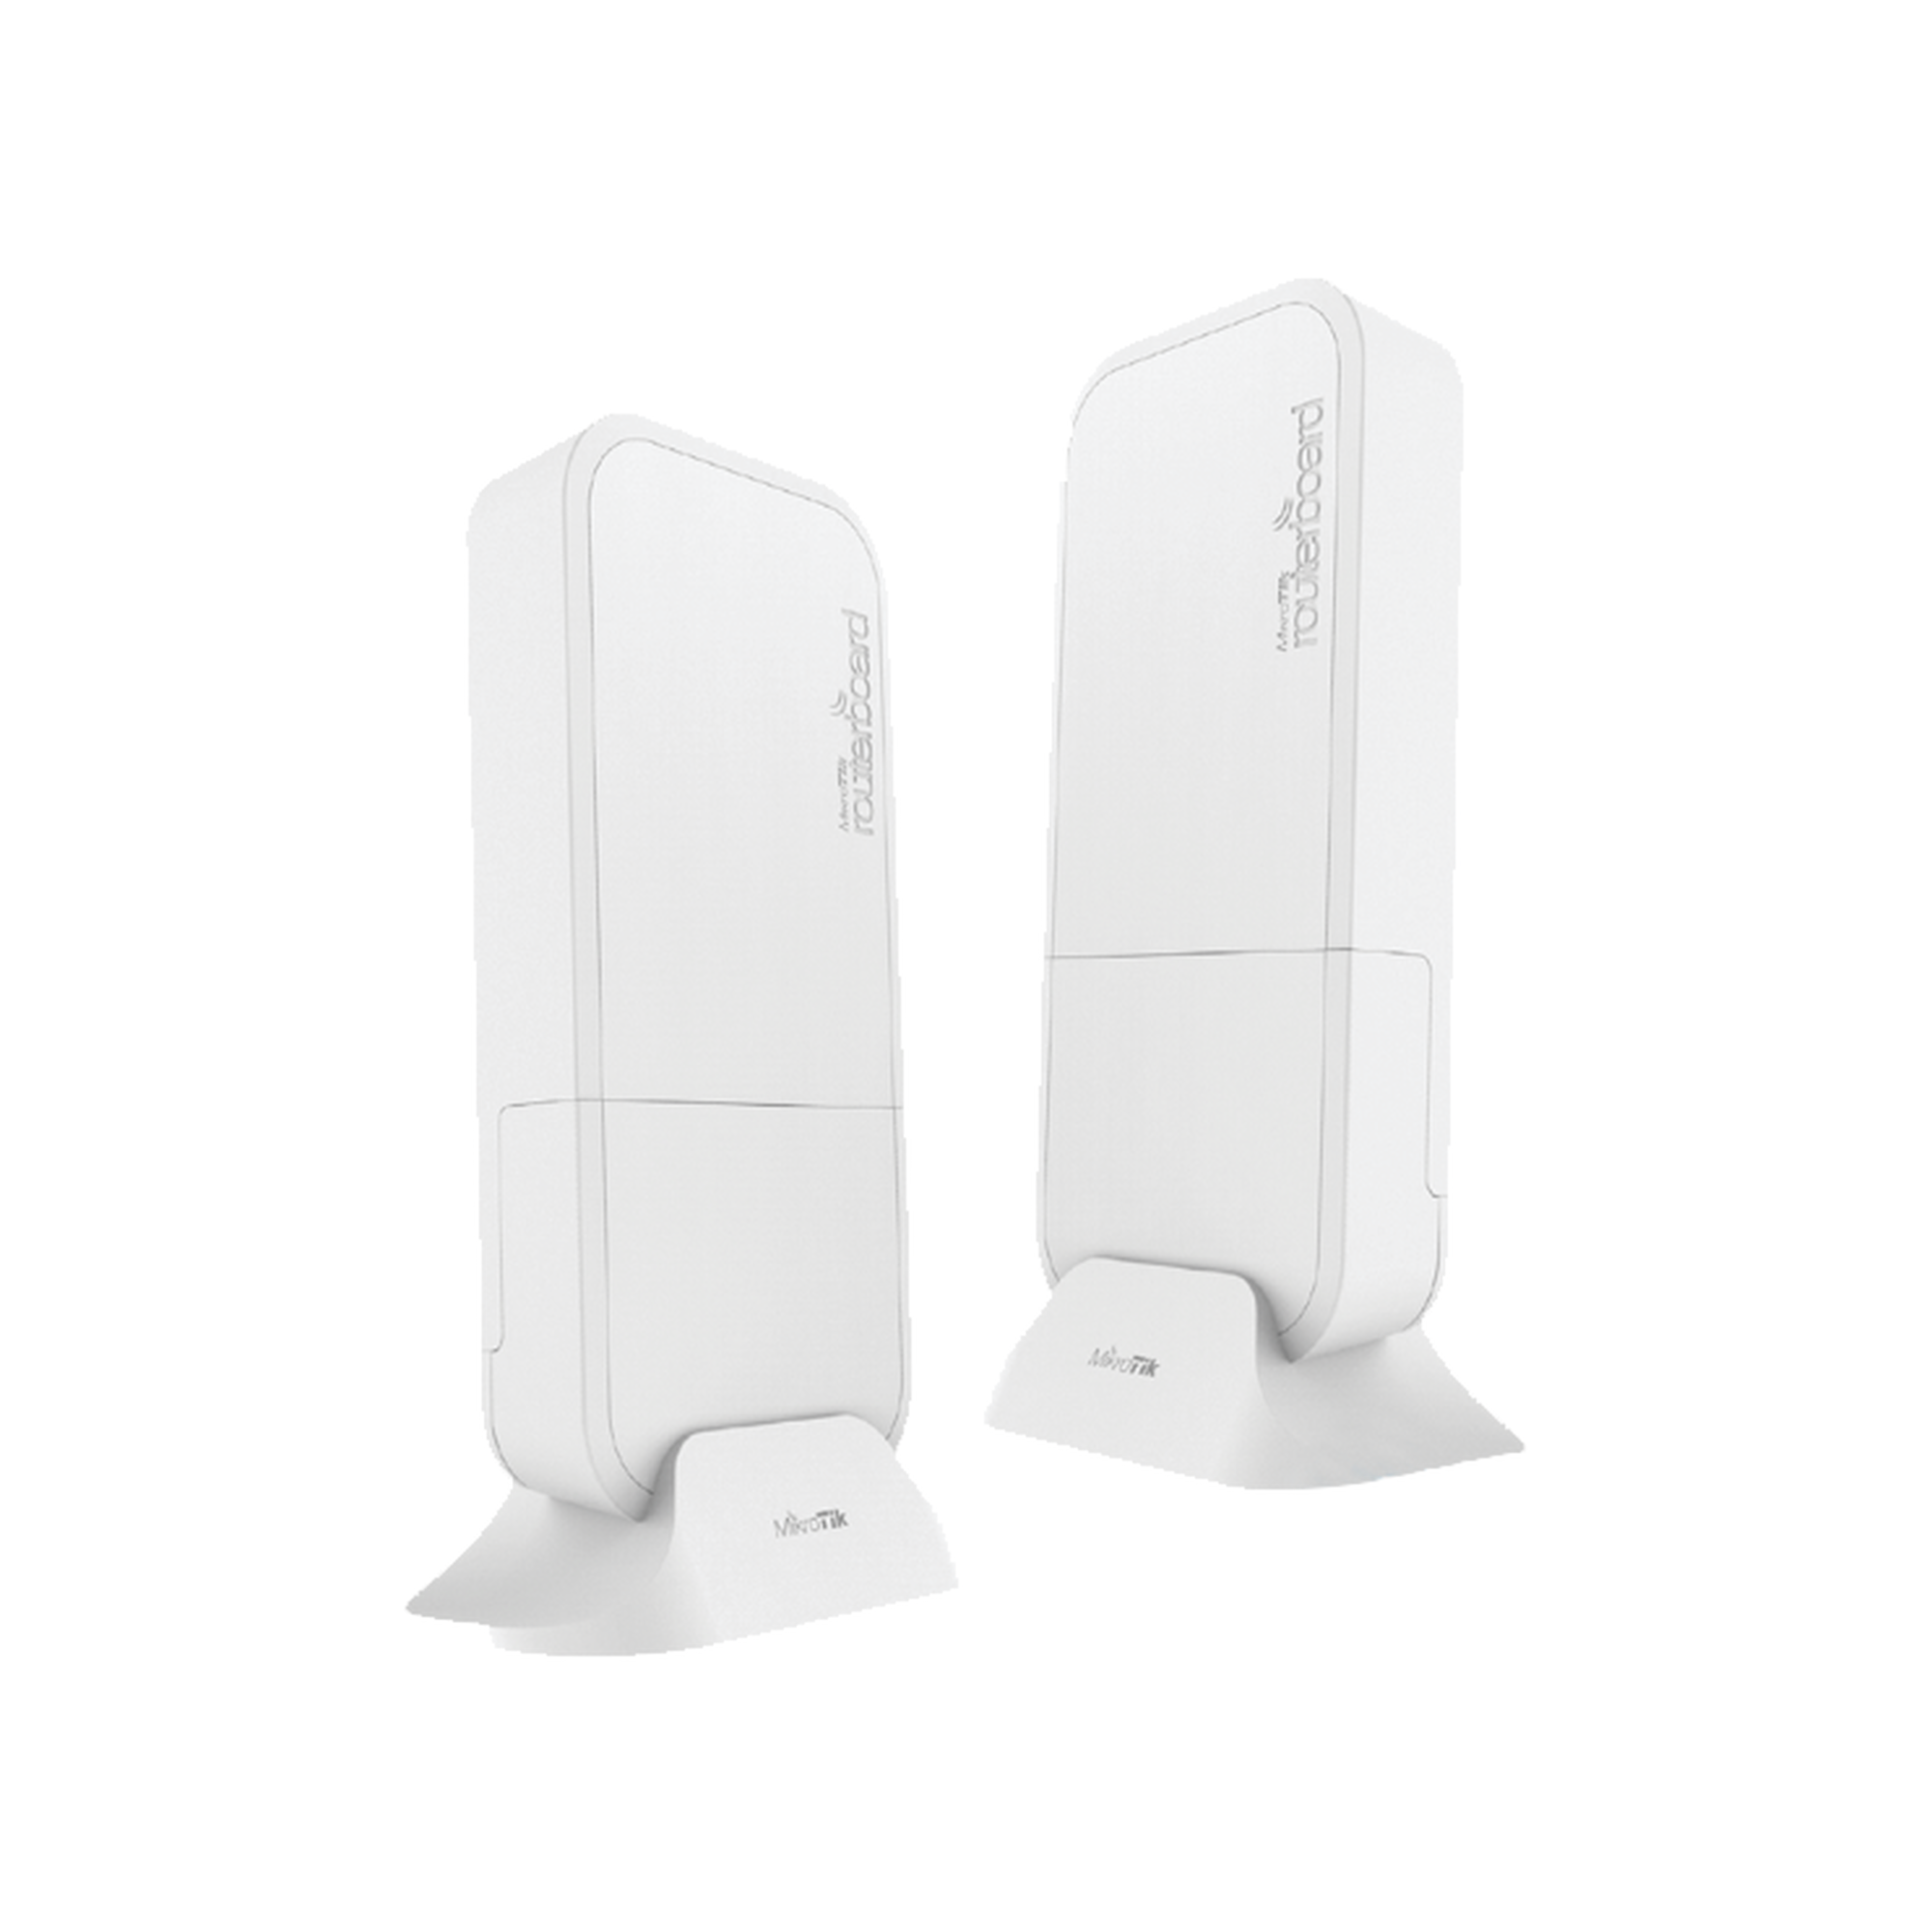 (Wireless Wire) Kit Enlace en 60 GHz PTP, Alcance hasta 100 mts, Hasta 1Gbps.